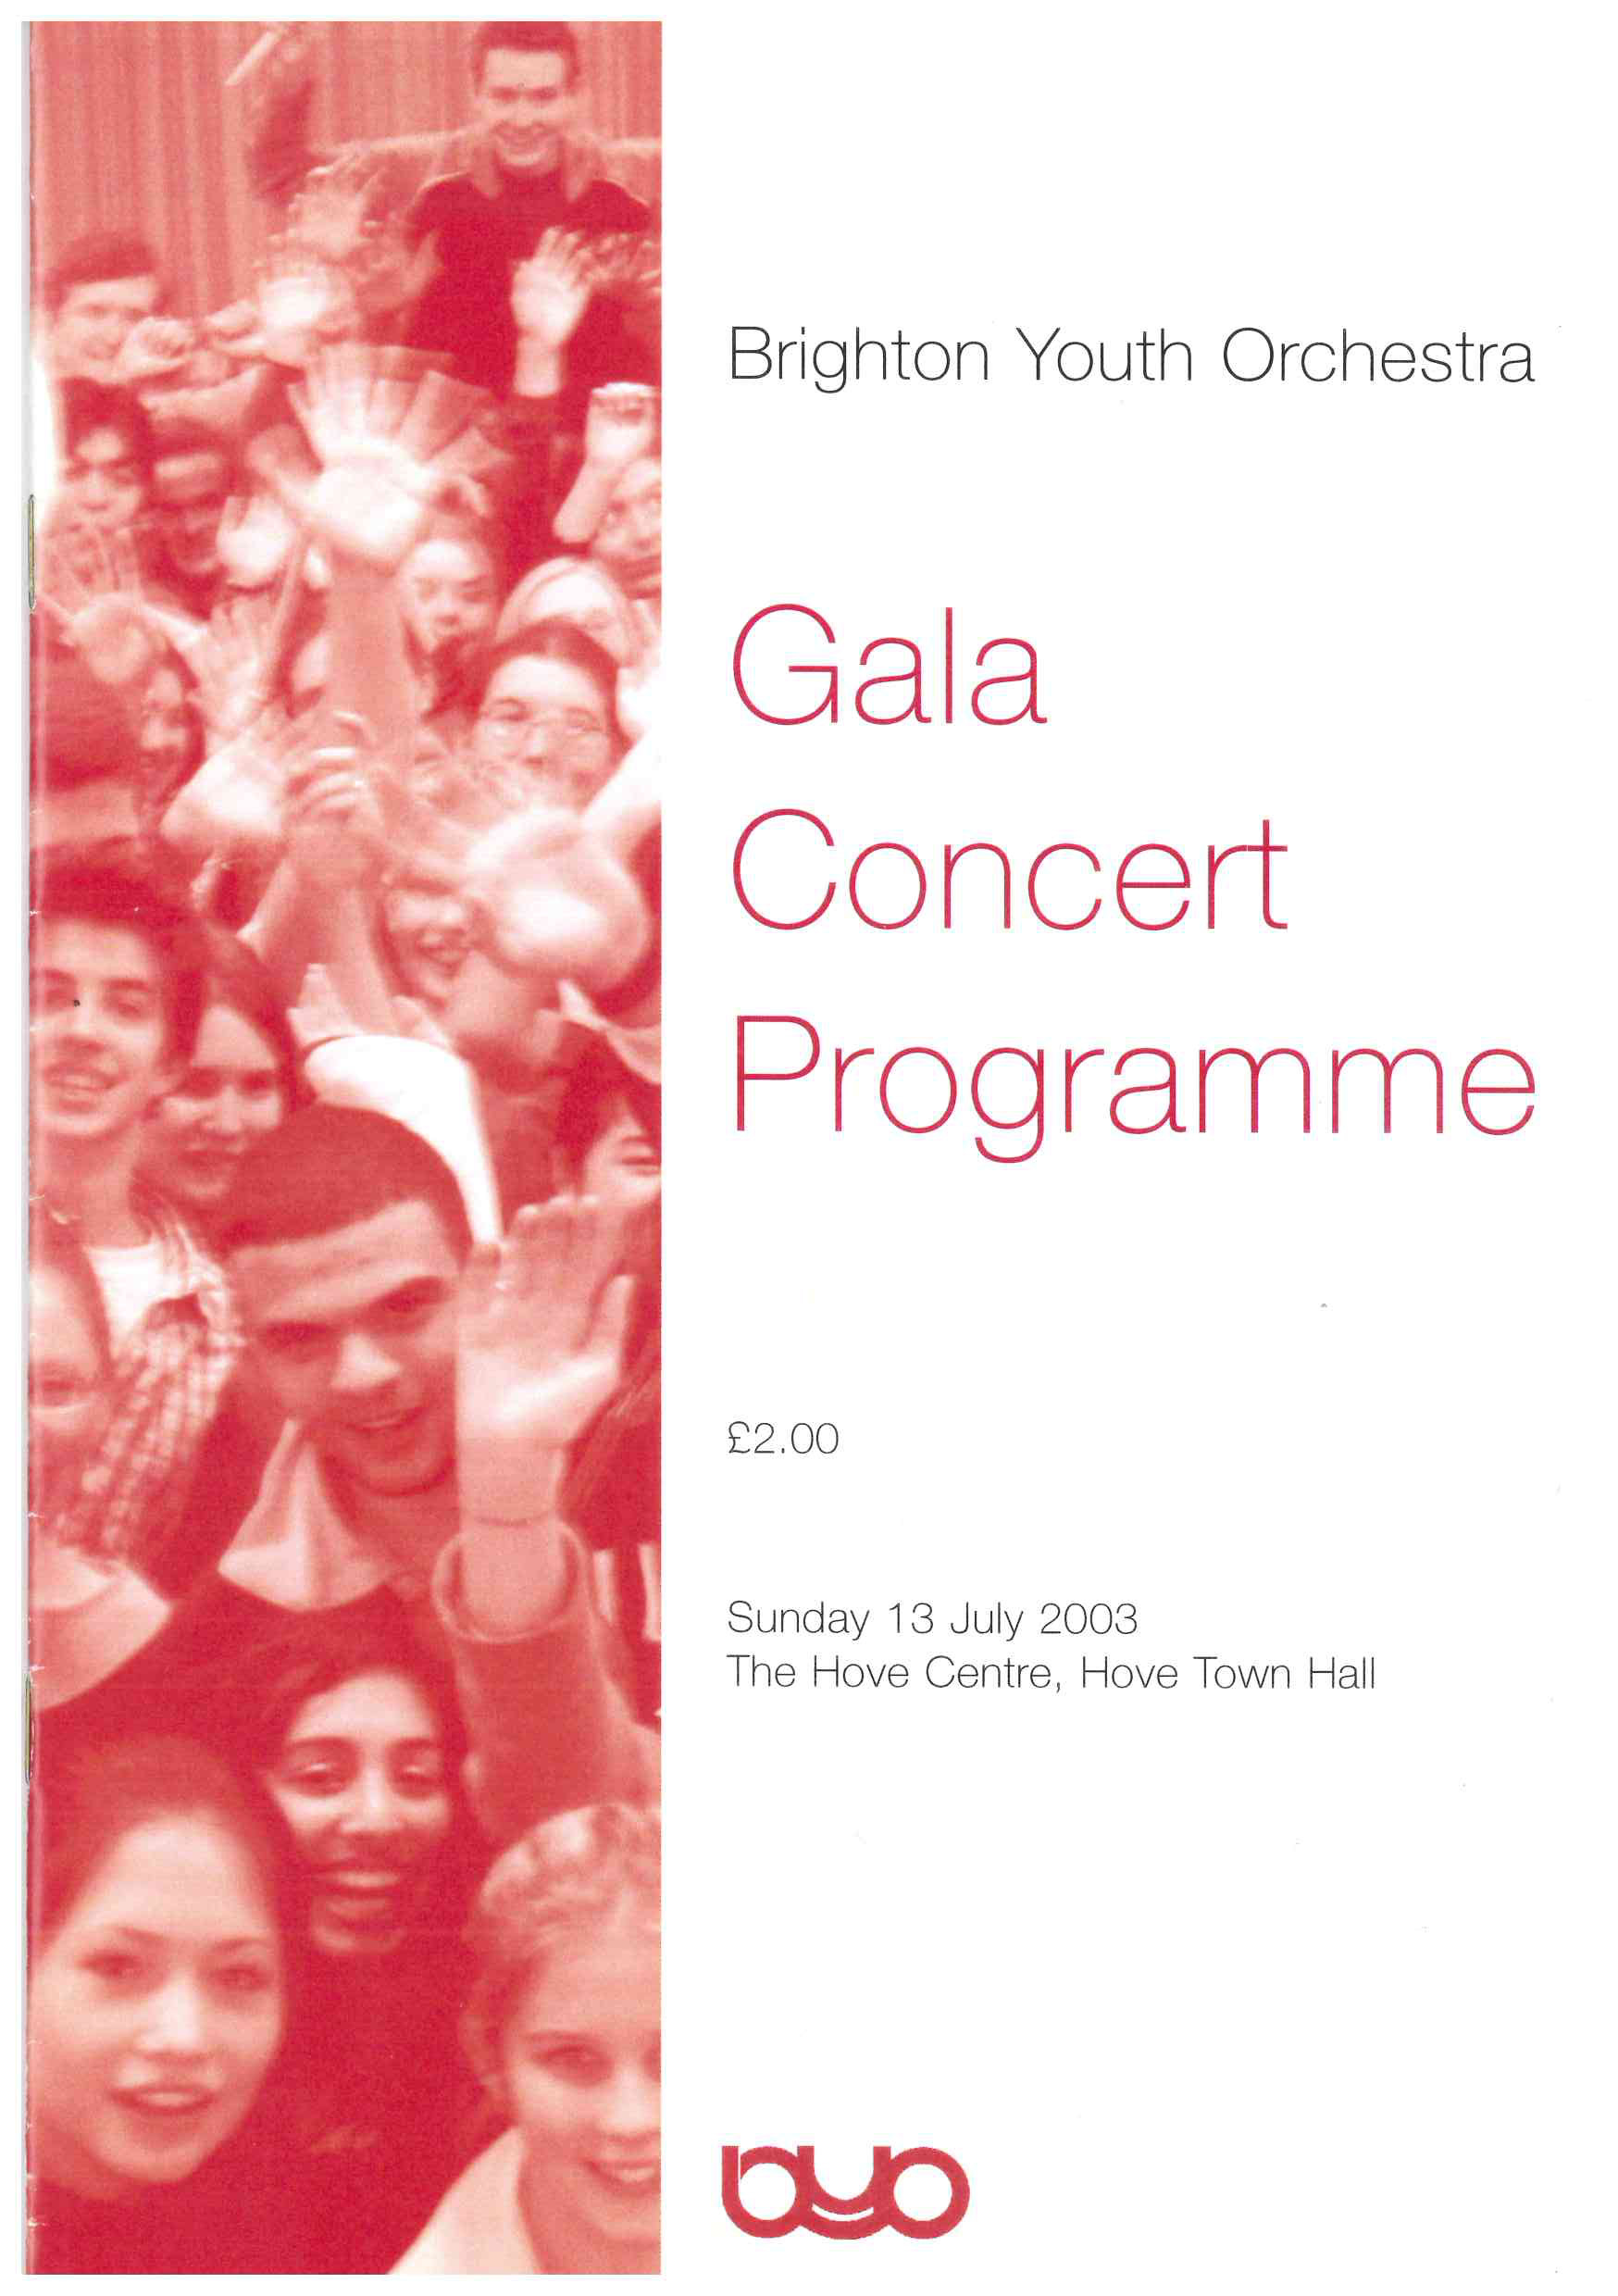 00381-BYO Gala Concert Programme, 13th July 2003.jpg